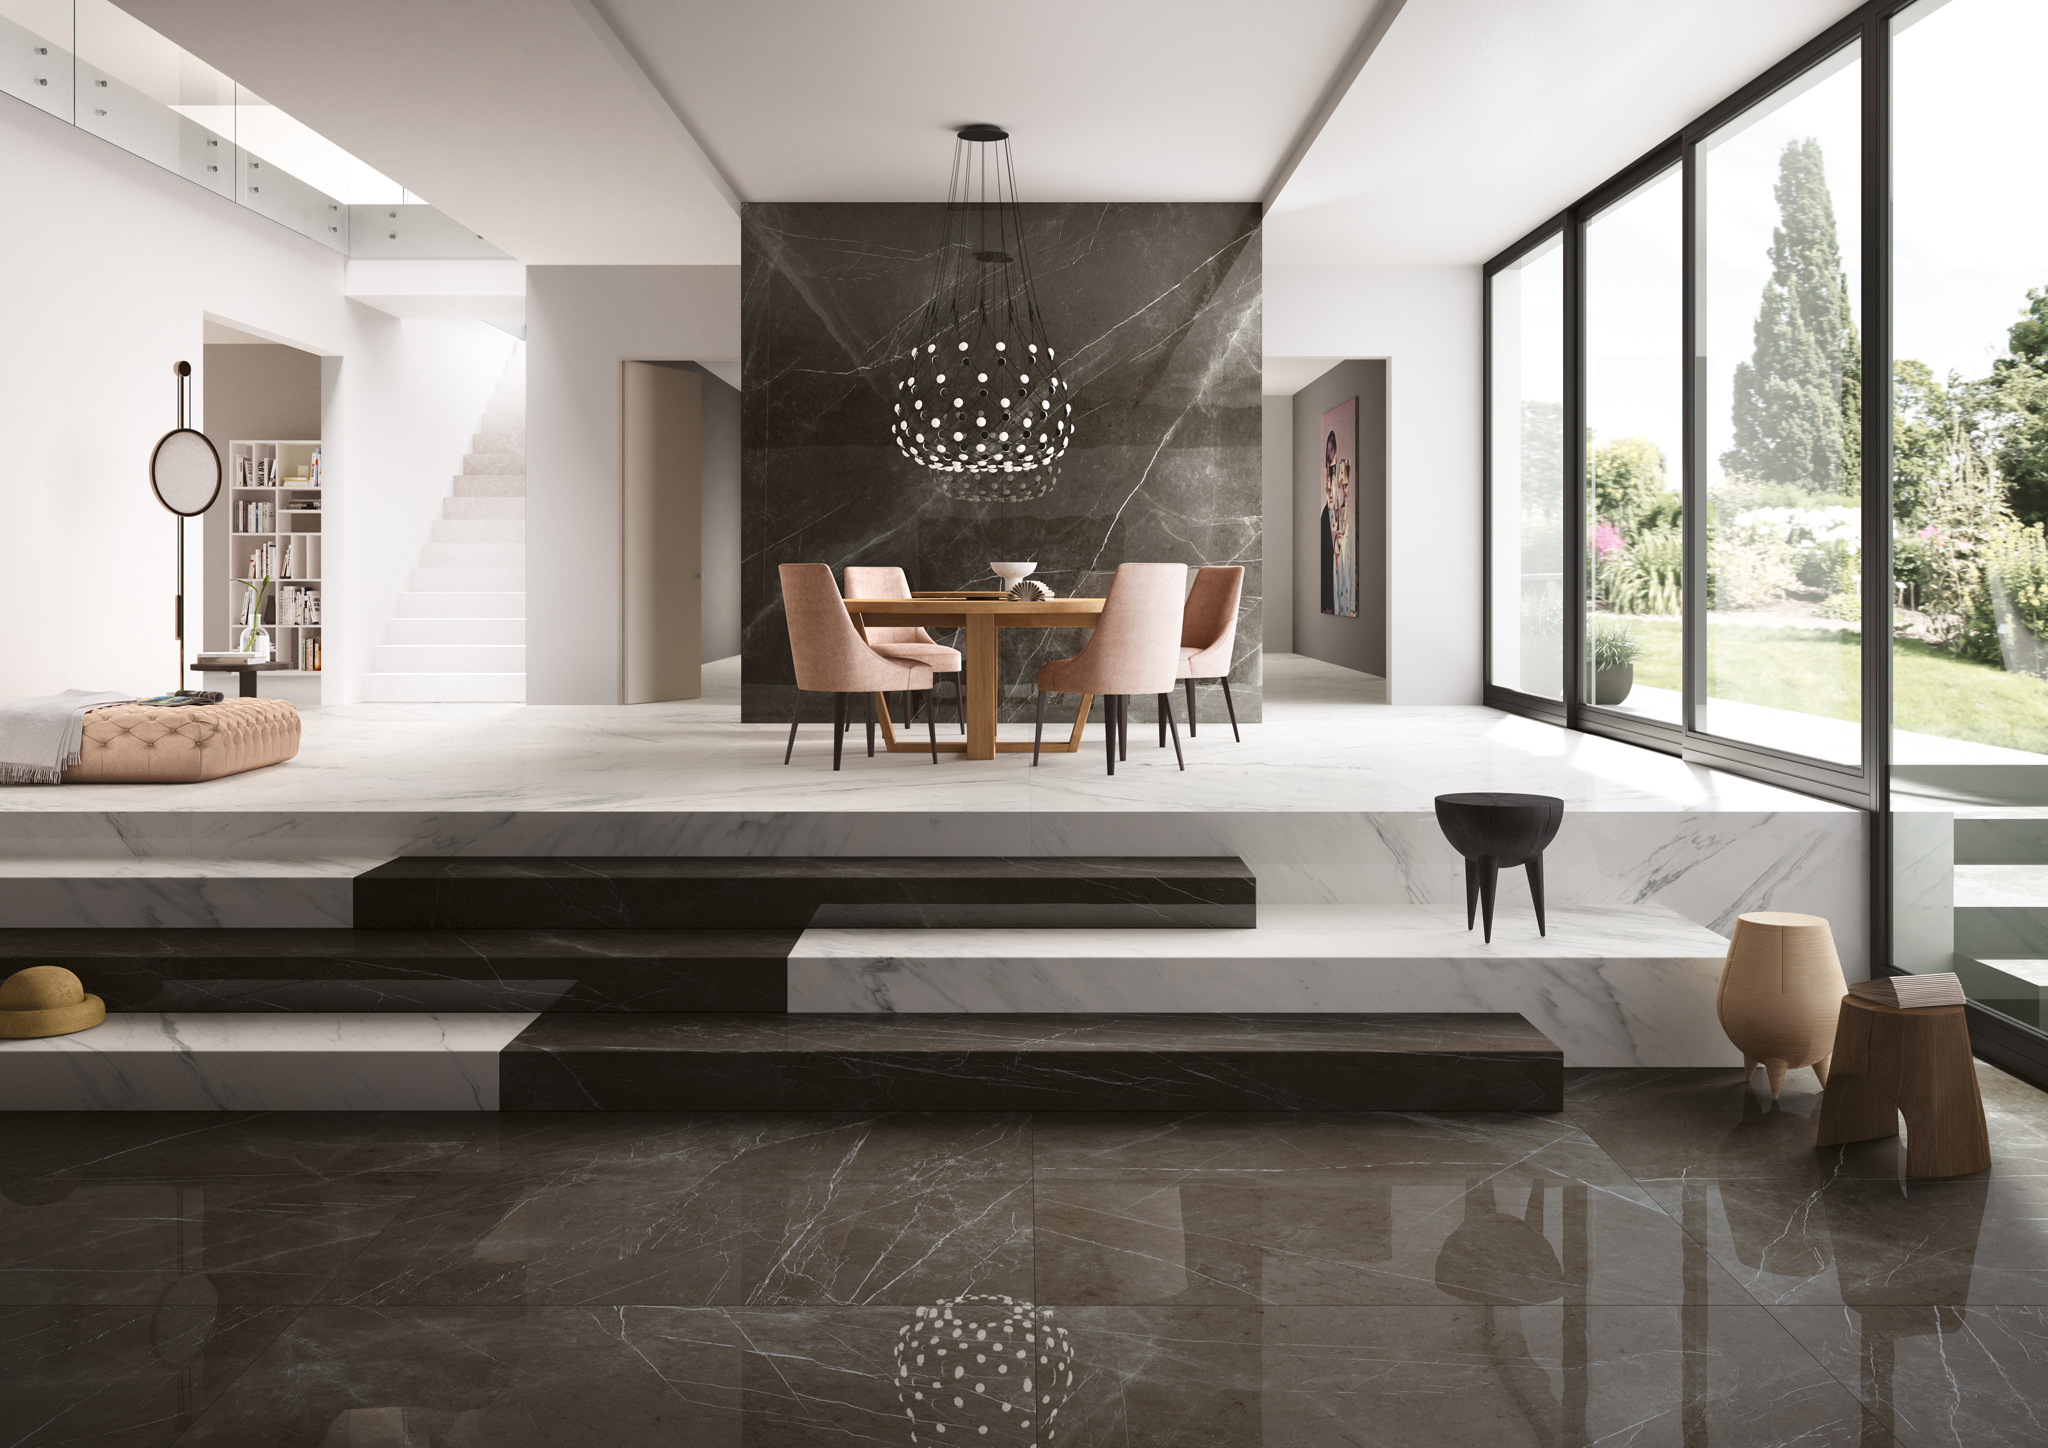 porcelain tile images: Grandi Marmi range high quality photo